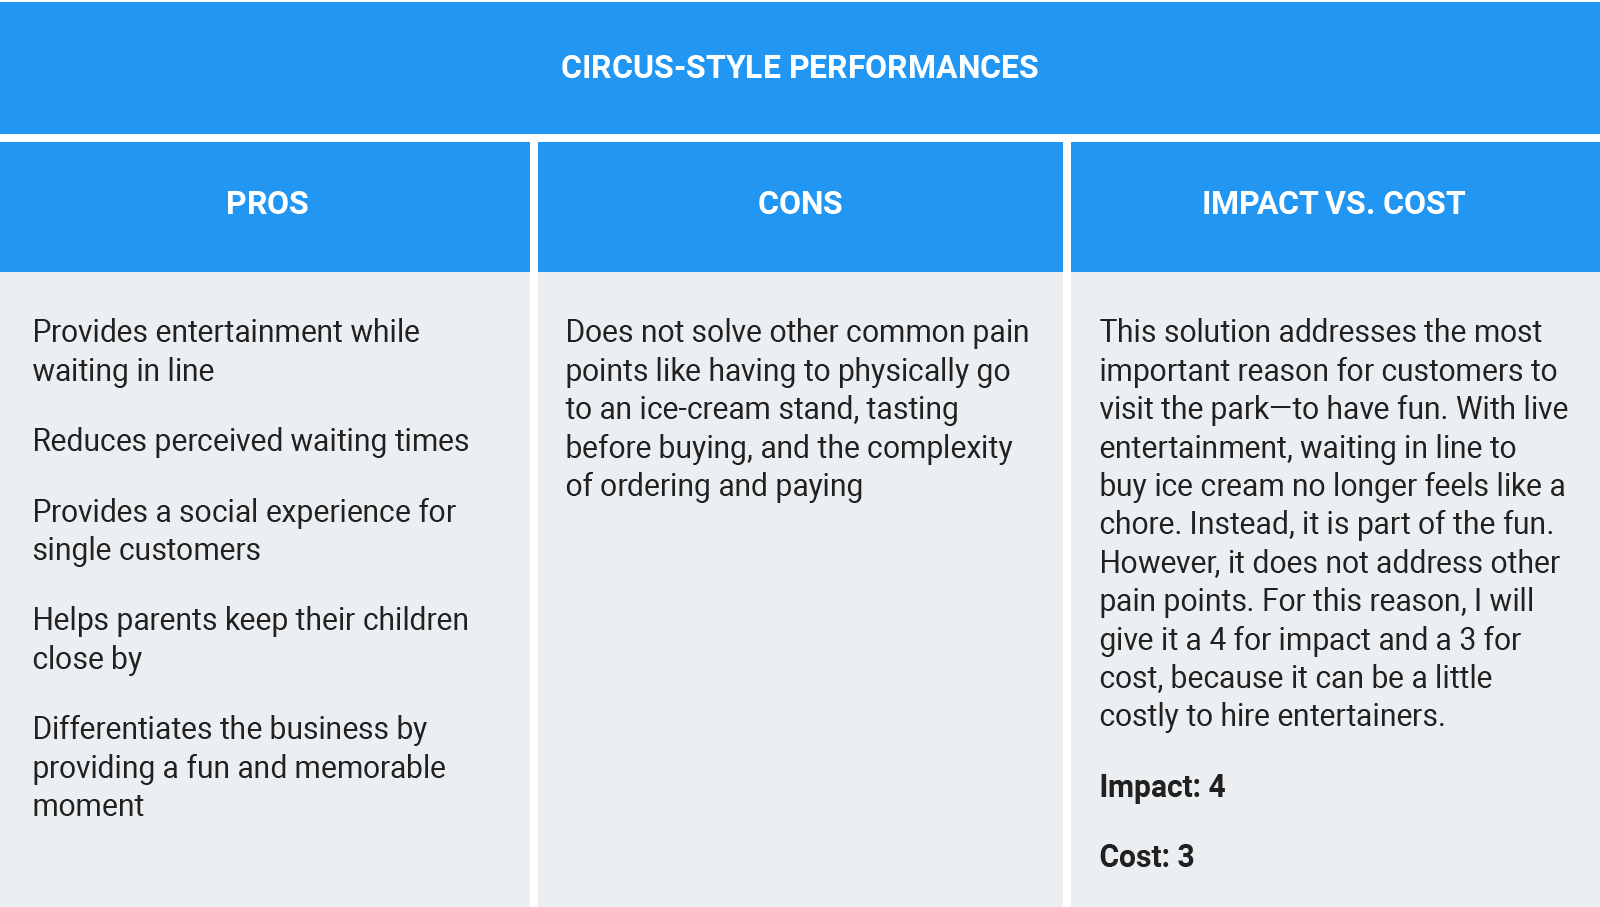 Tracking the pros and cons for the Circus-style Performances idea and evaluating how the idea scores relative to impact vs. cost